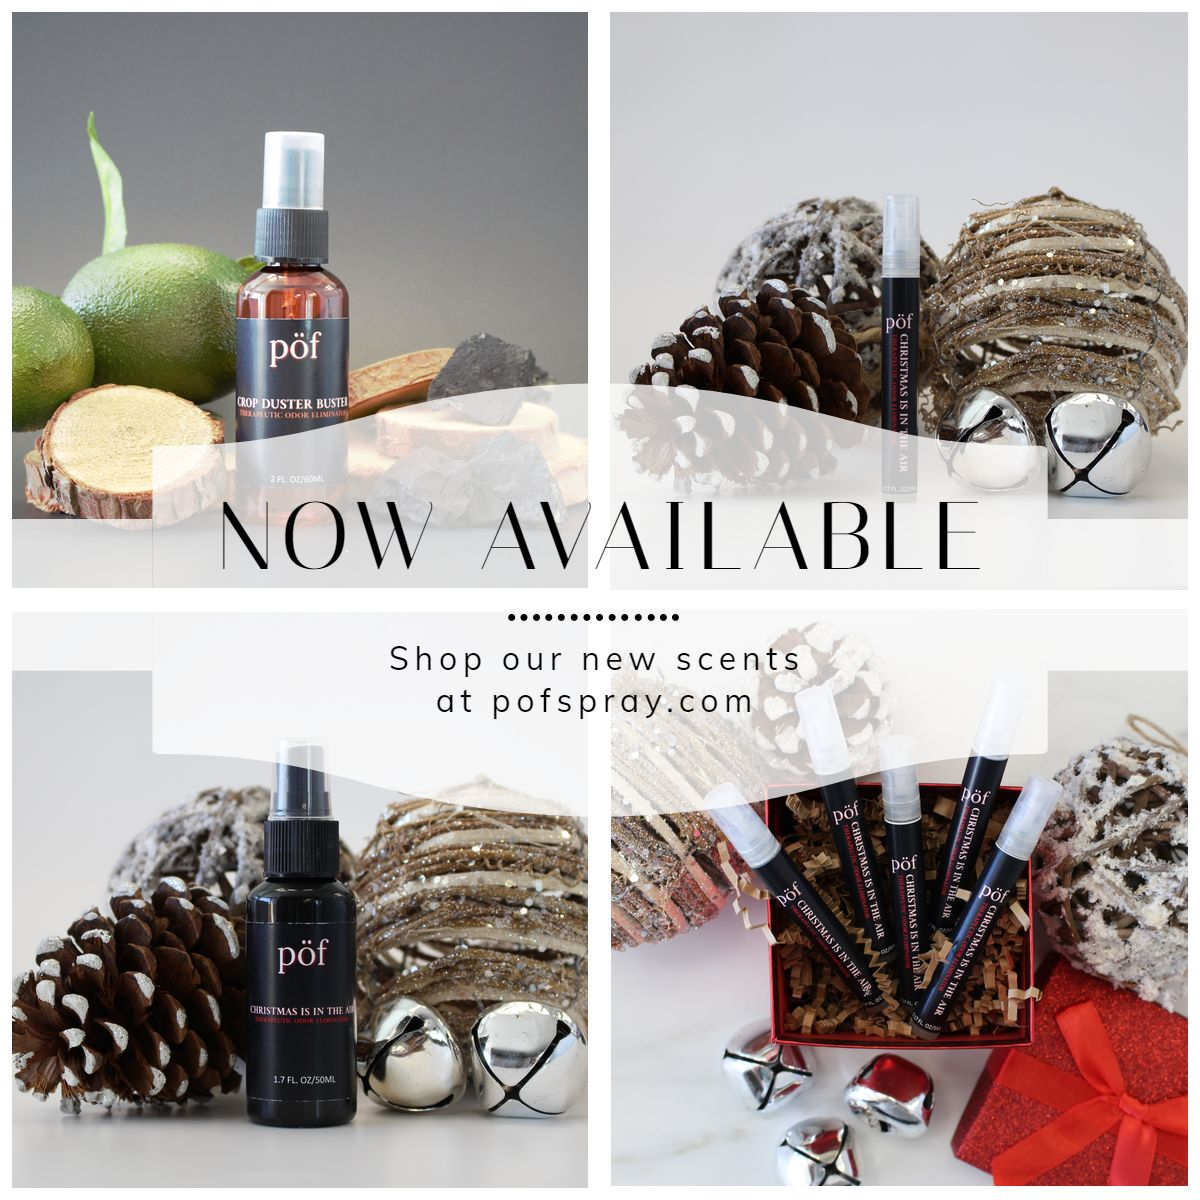 Holiday Gift Ideas In 2020 Scents Holiday Gifts Gifts